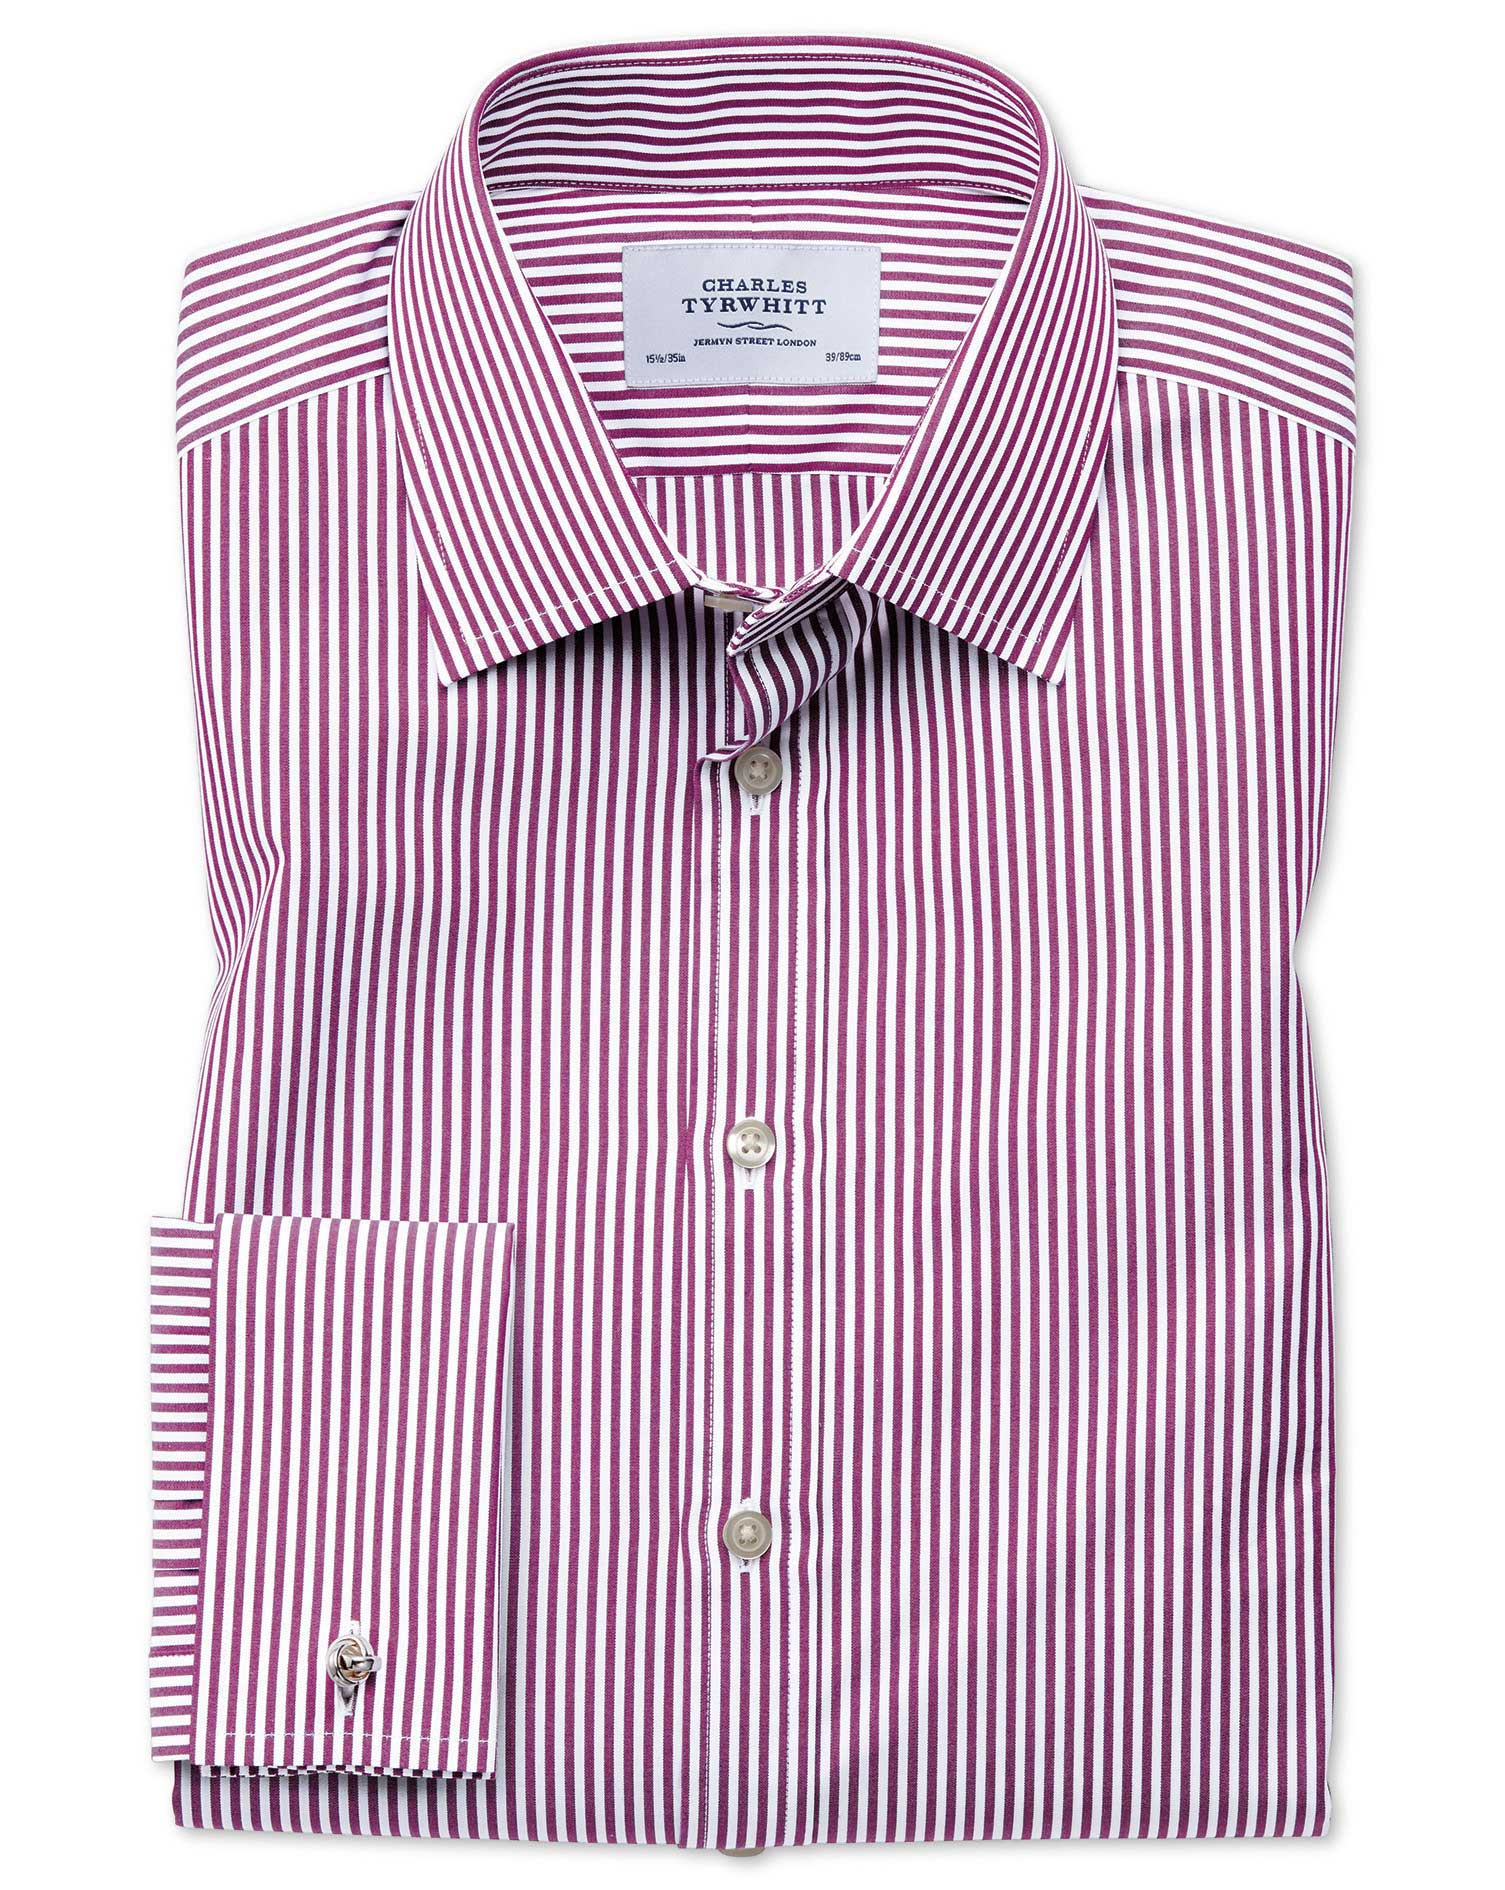 Slim Fit Bengal Stripe Purple Cotton Formal Shirt Single Cuff Size 16.5/34 by Charles Tyrwhitt